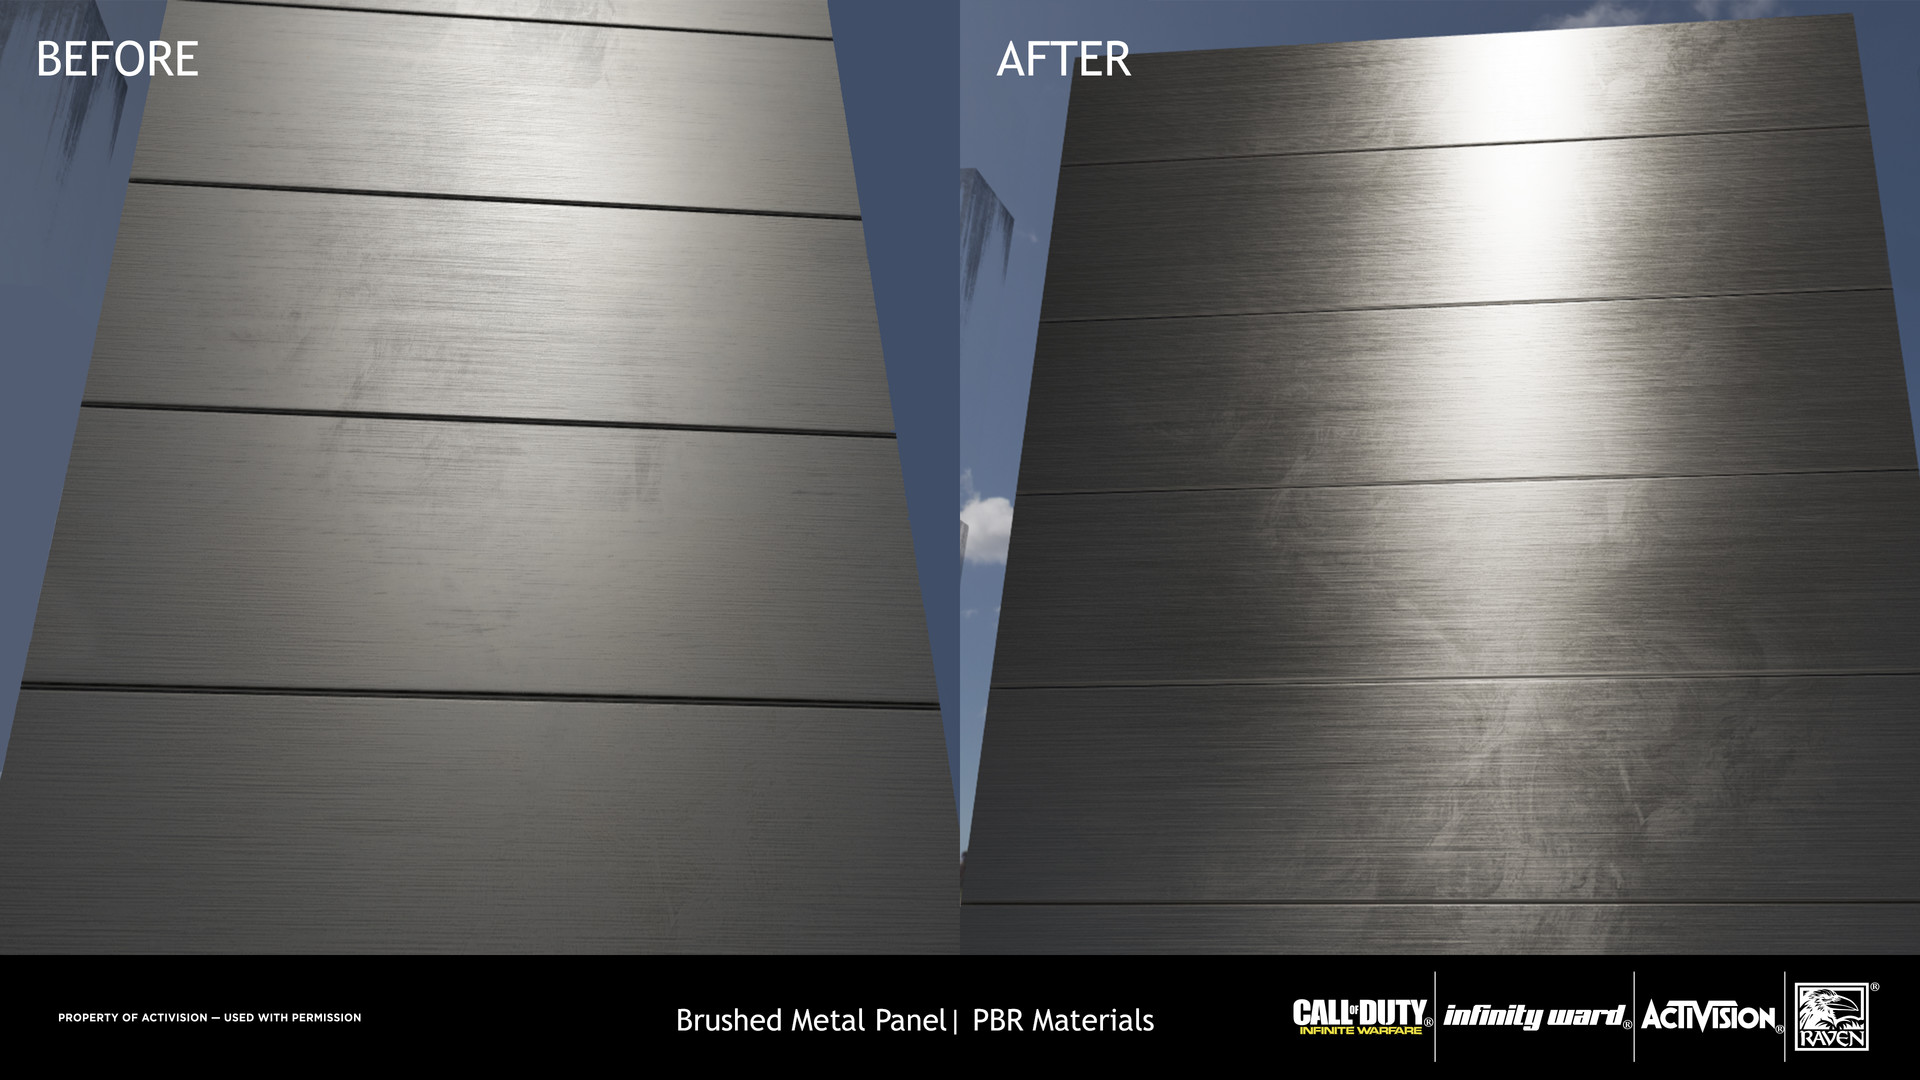 Specular and Gloss values were fixed as well as the creation of a mask for the Anisotropic Shader to enhance the brushed metal look.